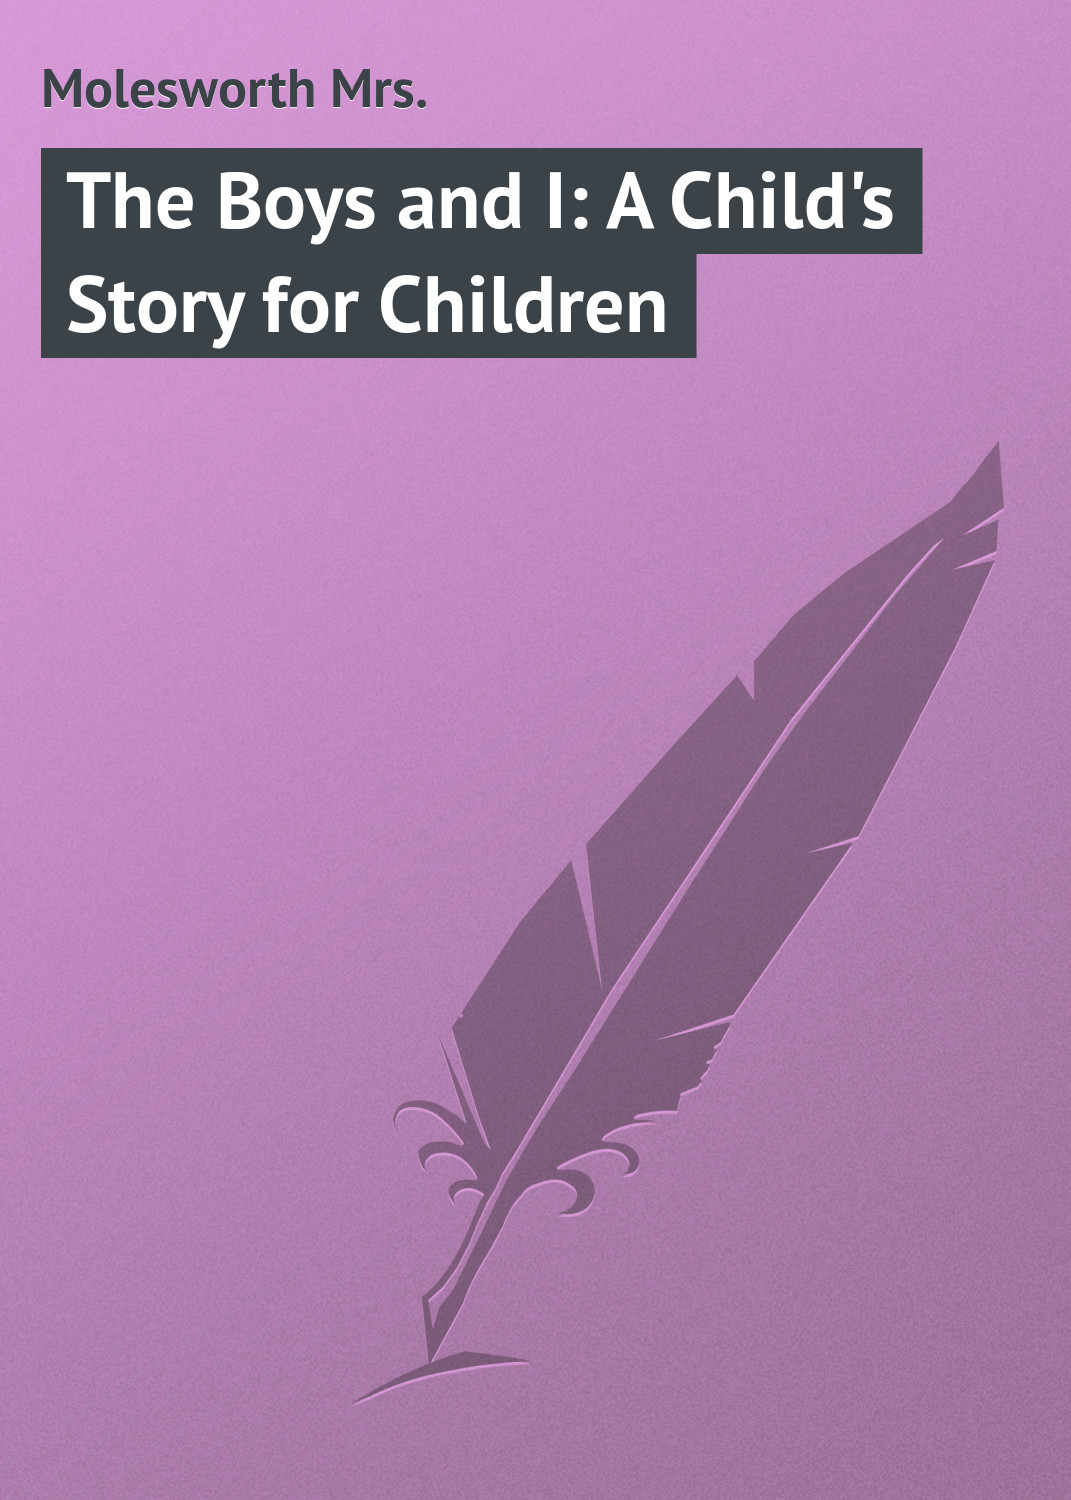 The Boys and I: A Child's Story for Children